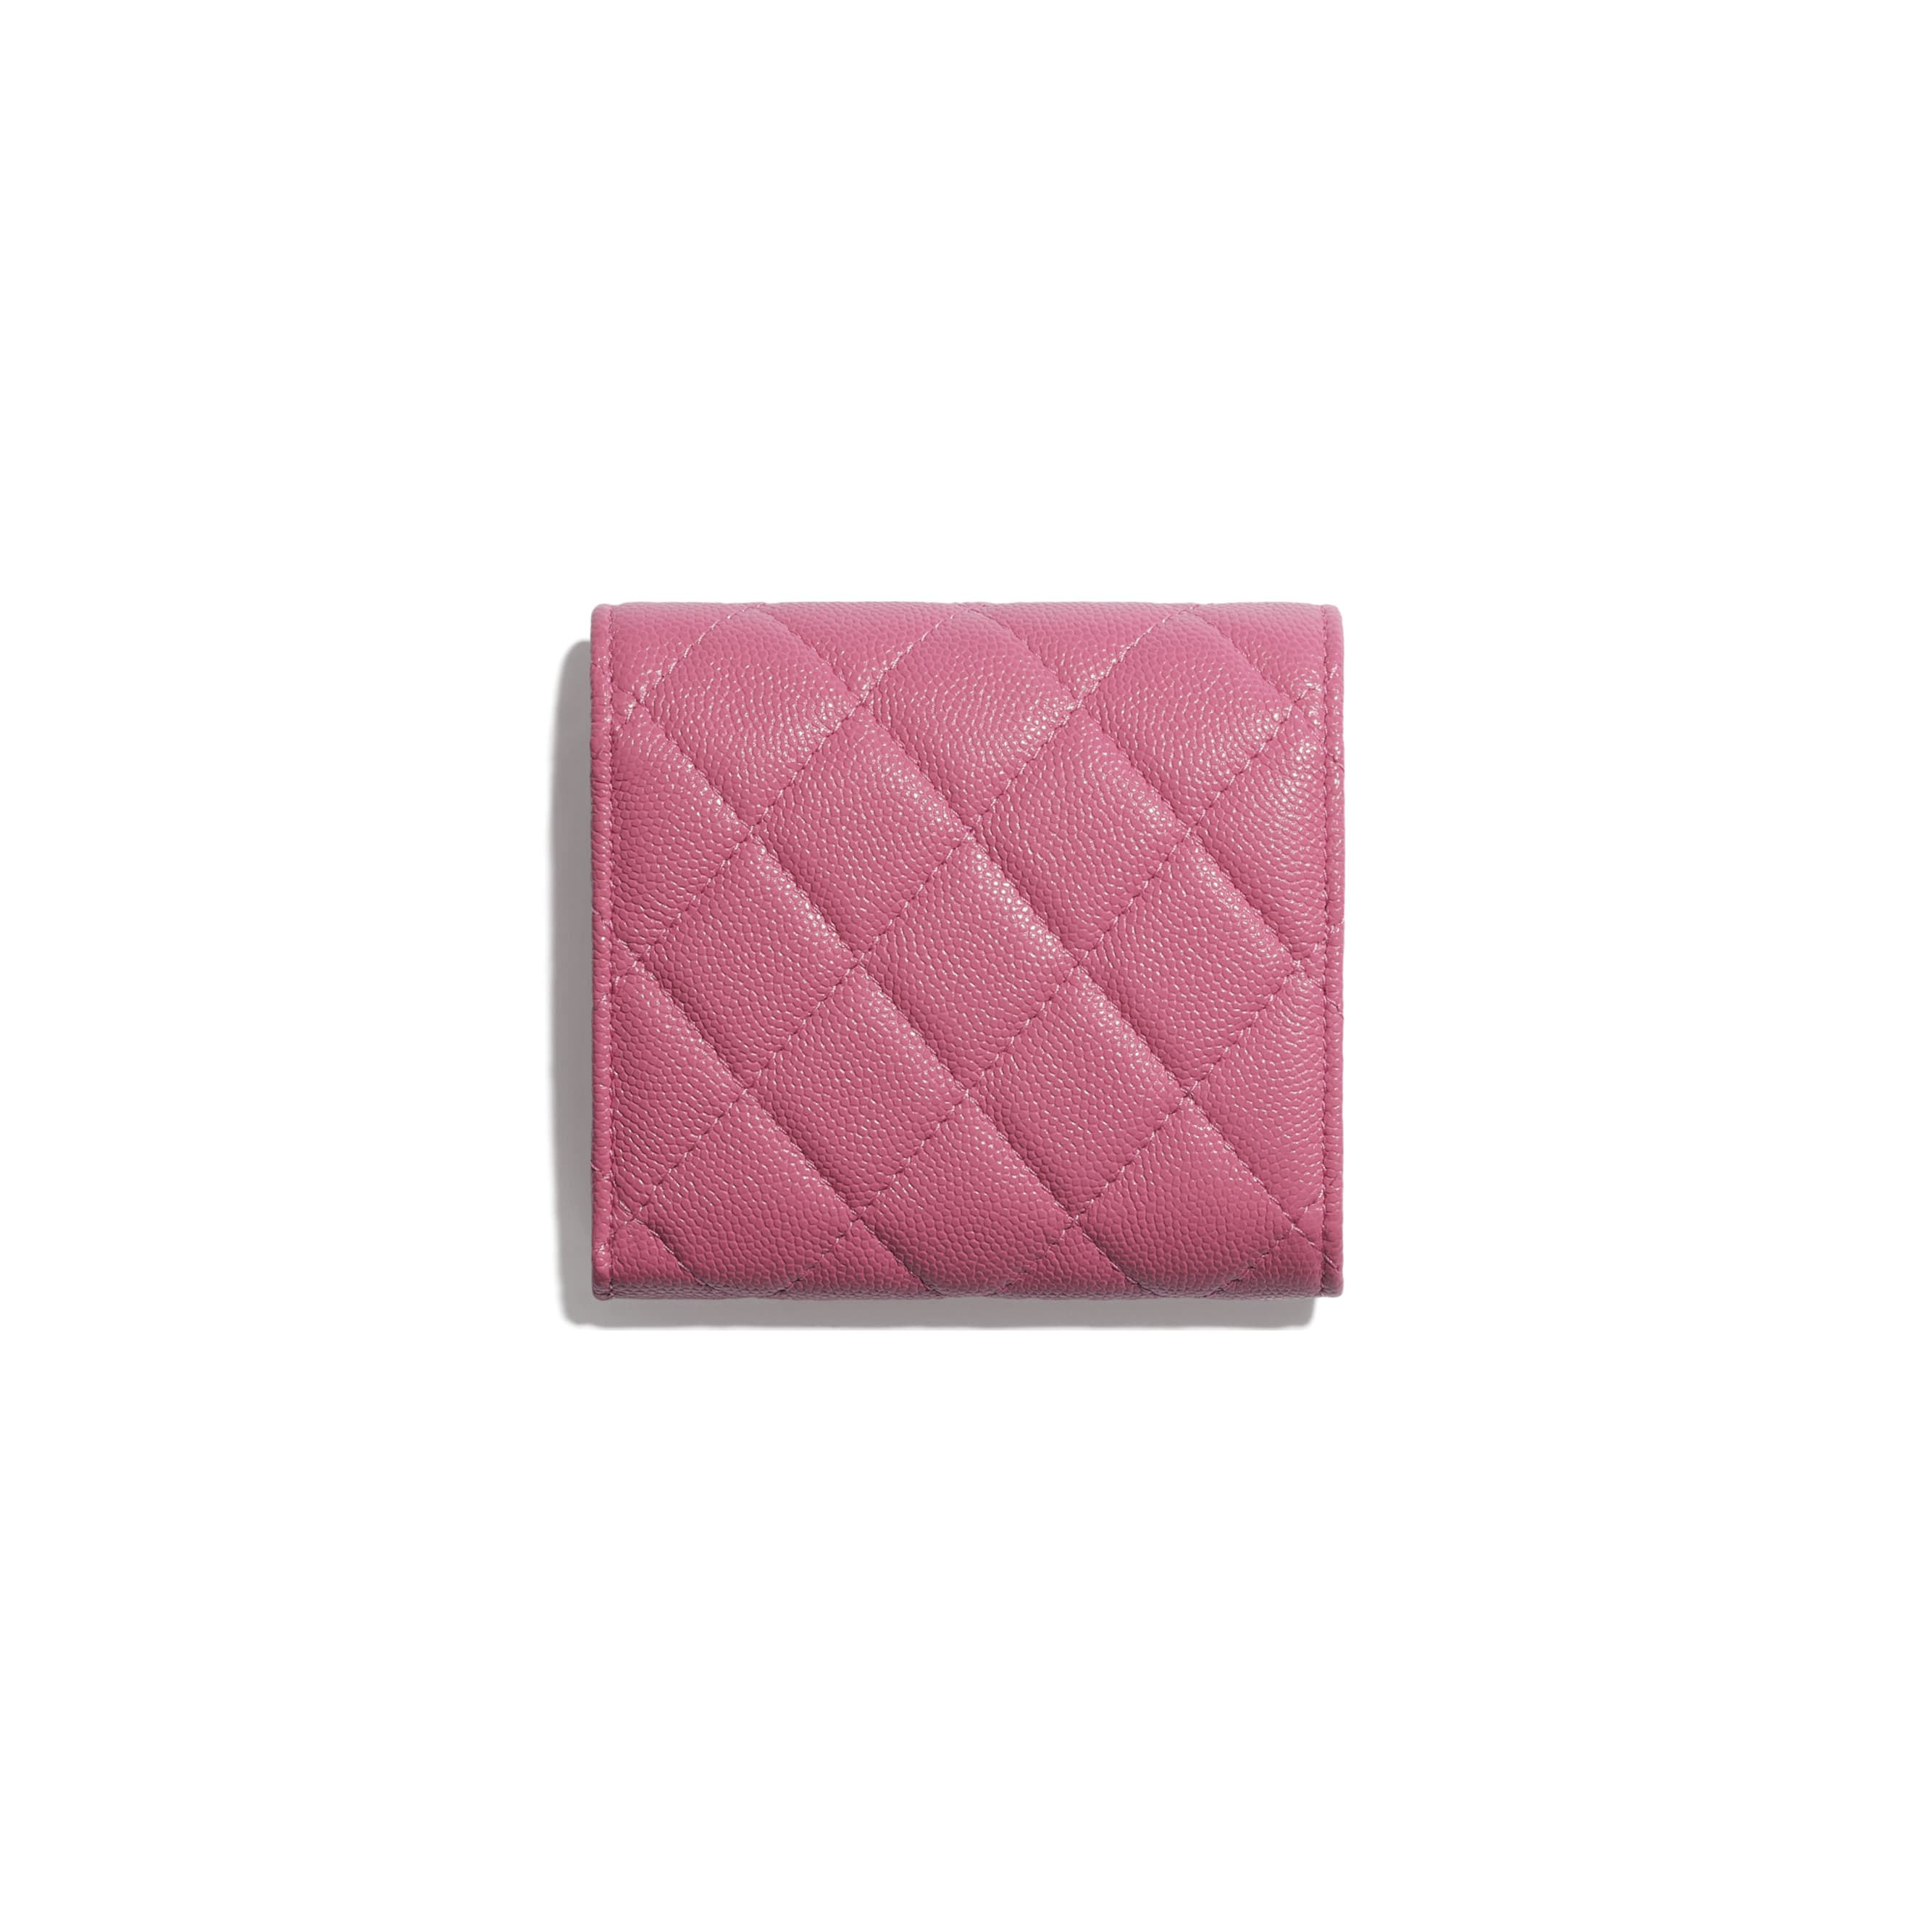 Small Flap Wallet - Pink, Blue & White - Grained Calfskin, Fabric & Silver-Tone Metal - CHANEL - Alternative view - see standard sized version